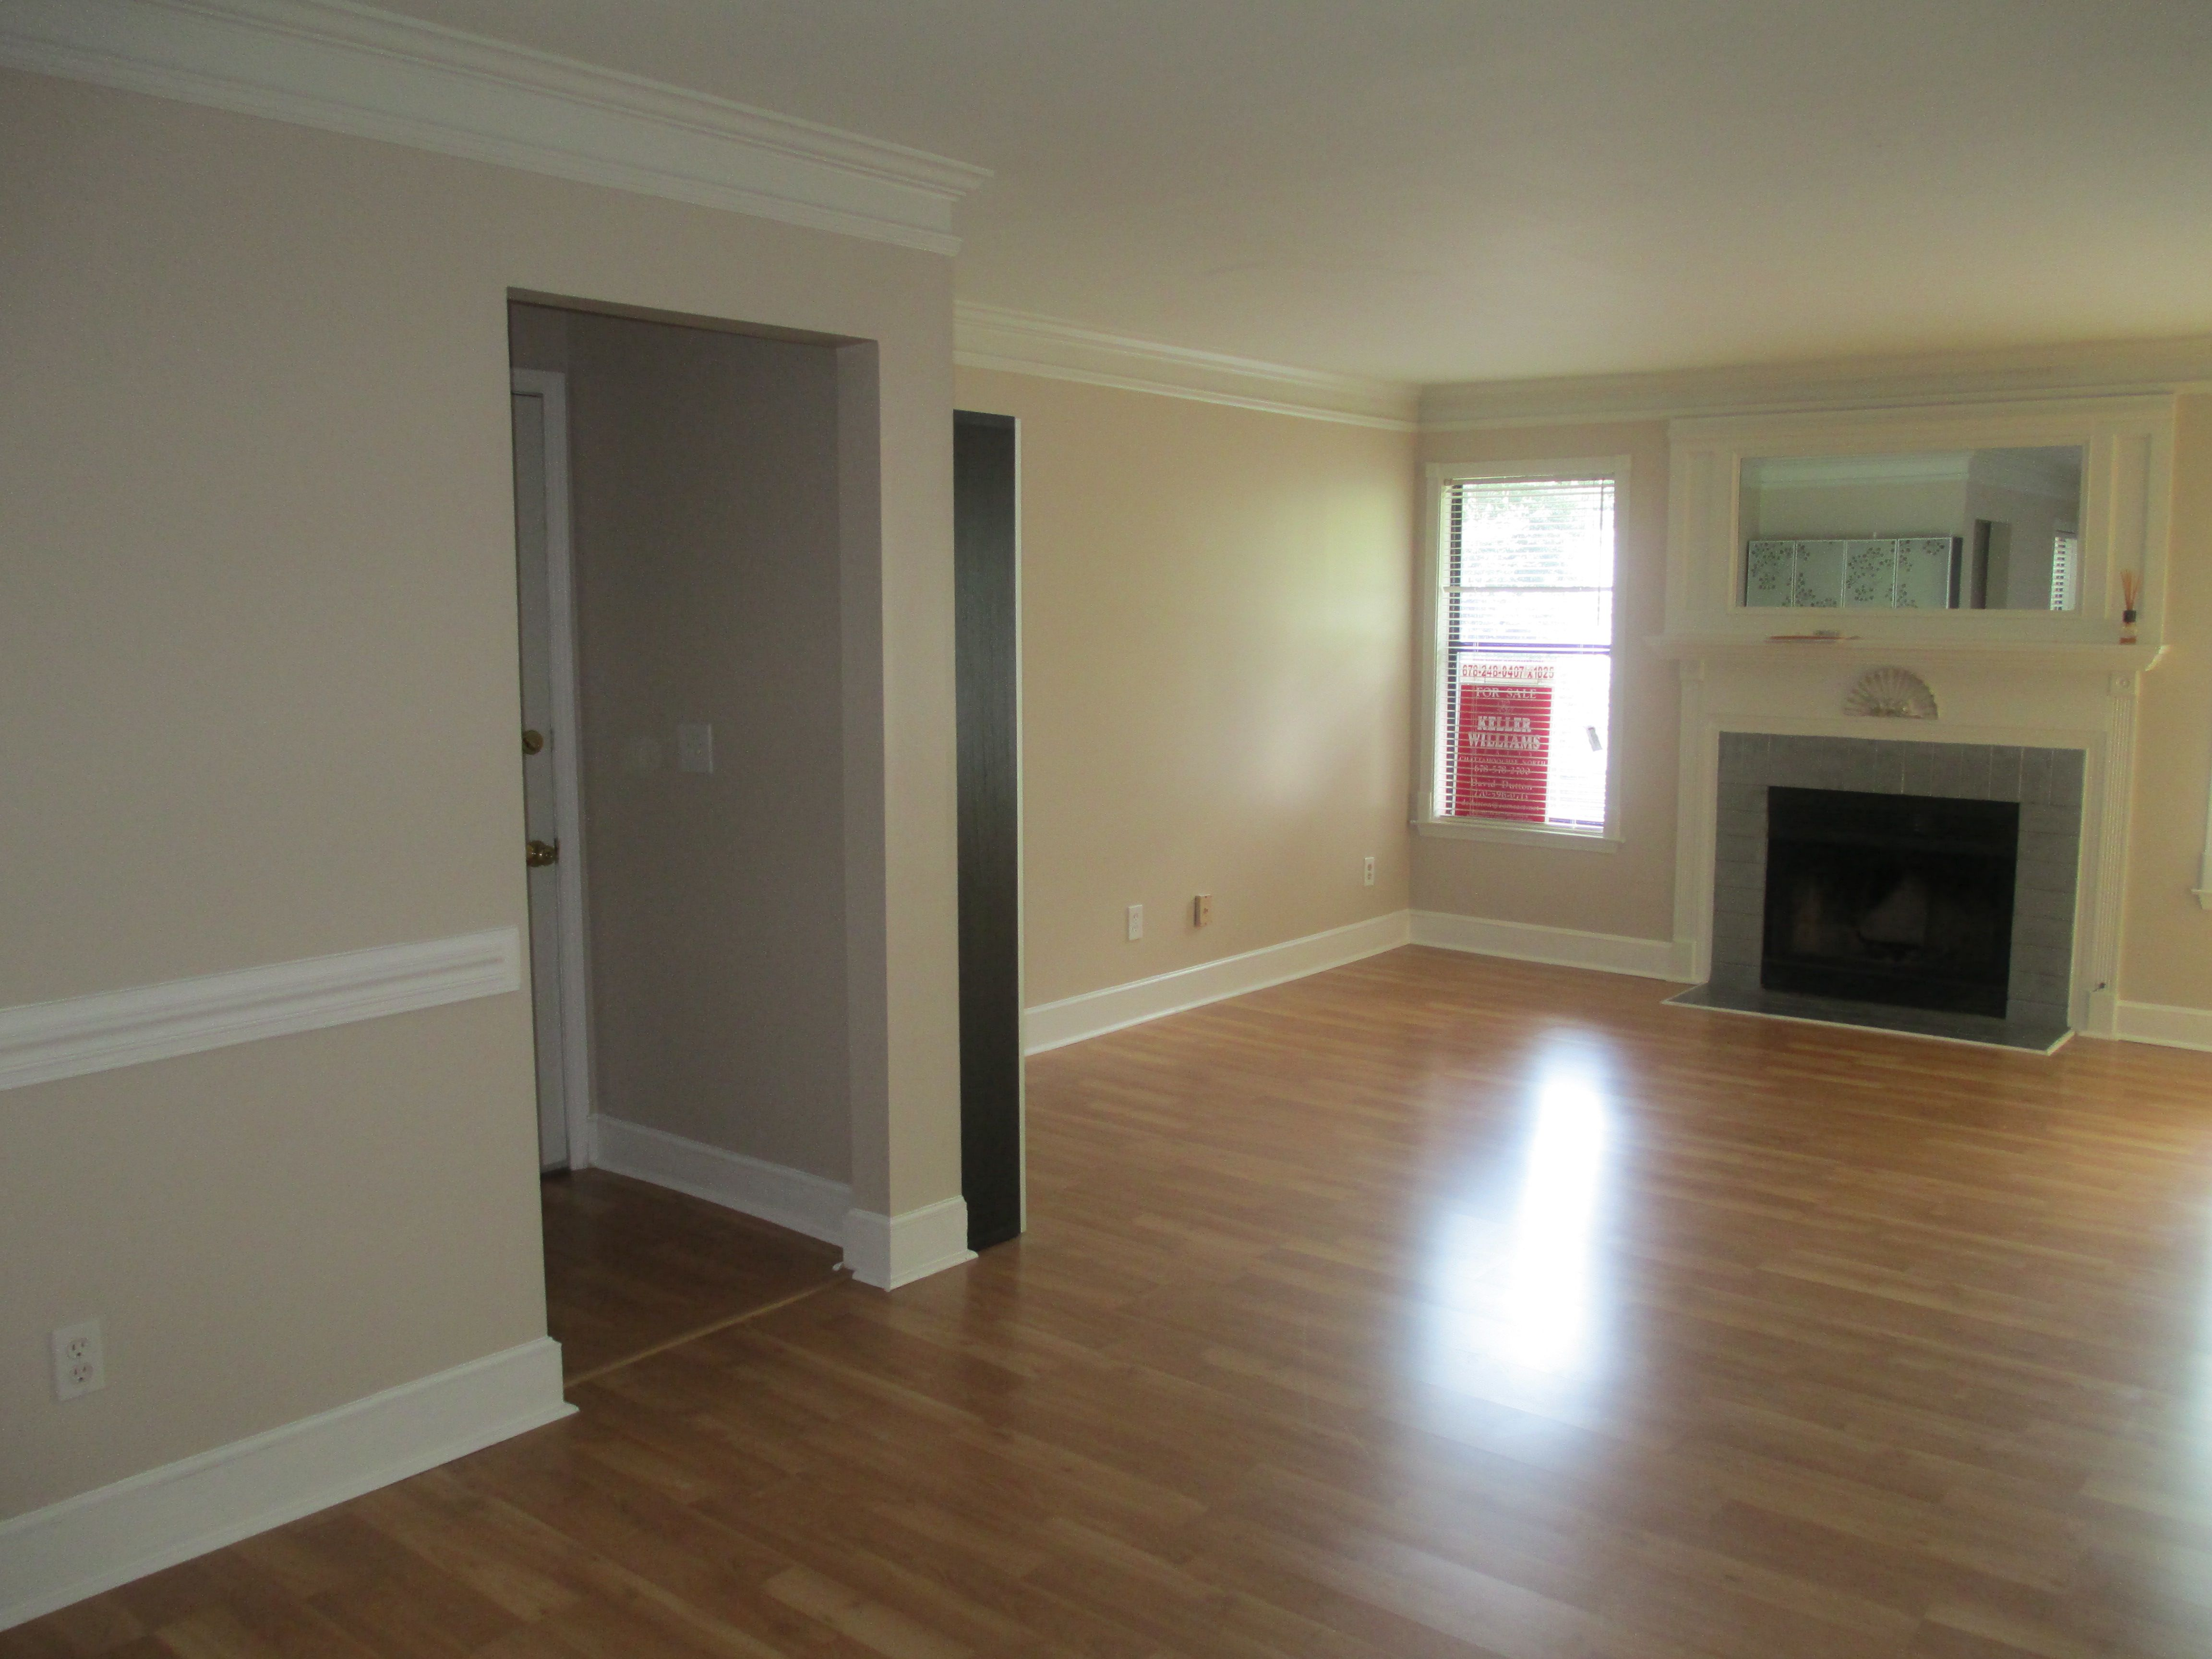 empty living room | Sweet home, Empty spaces, Home